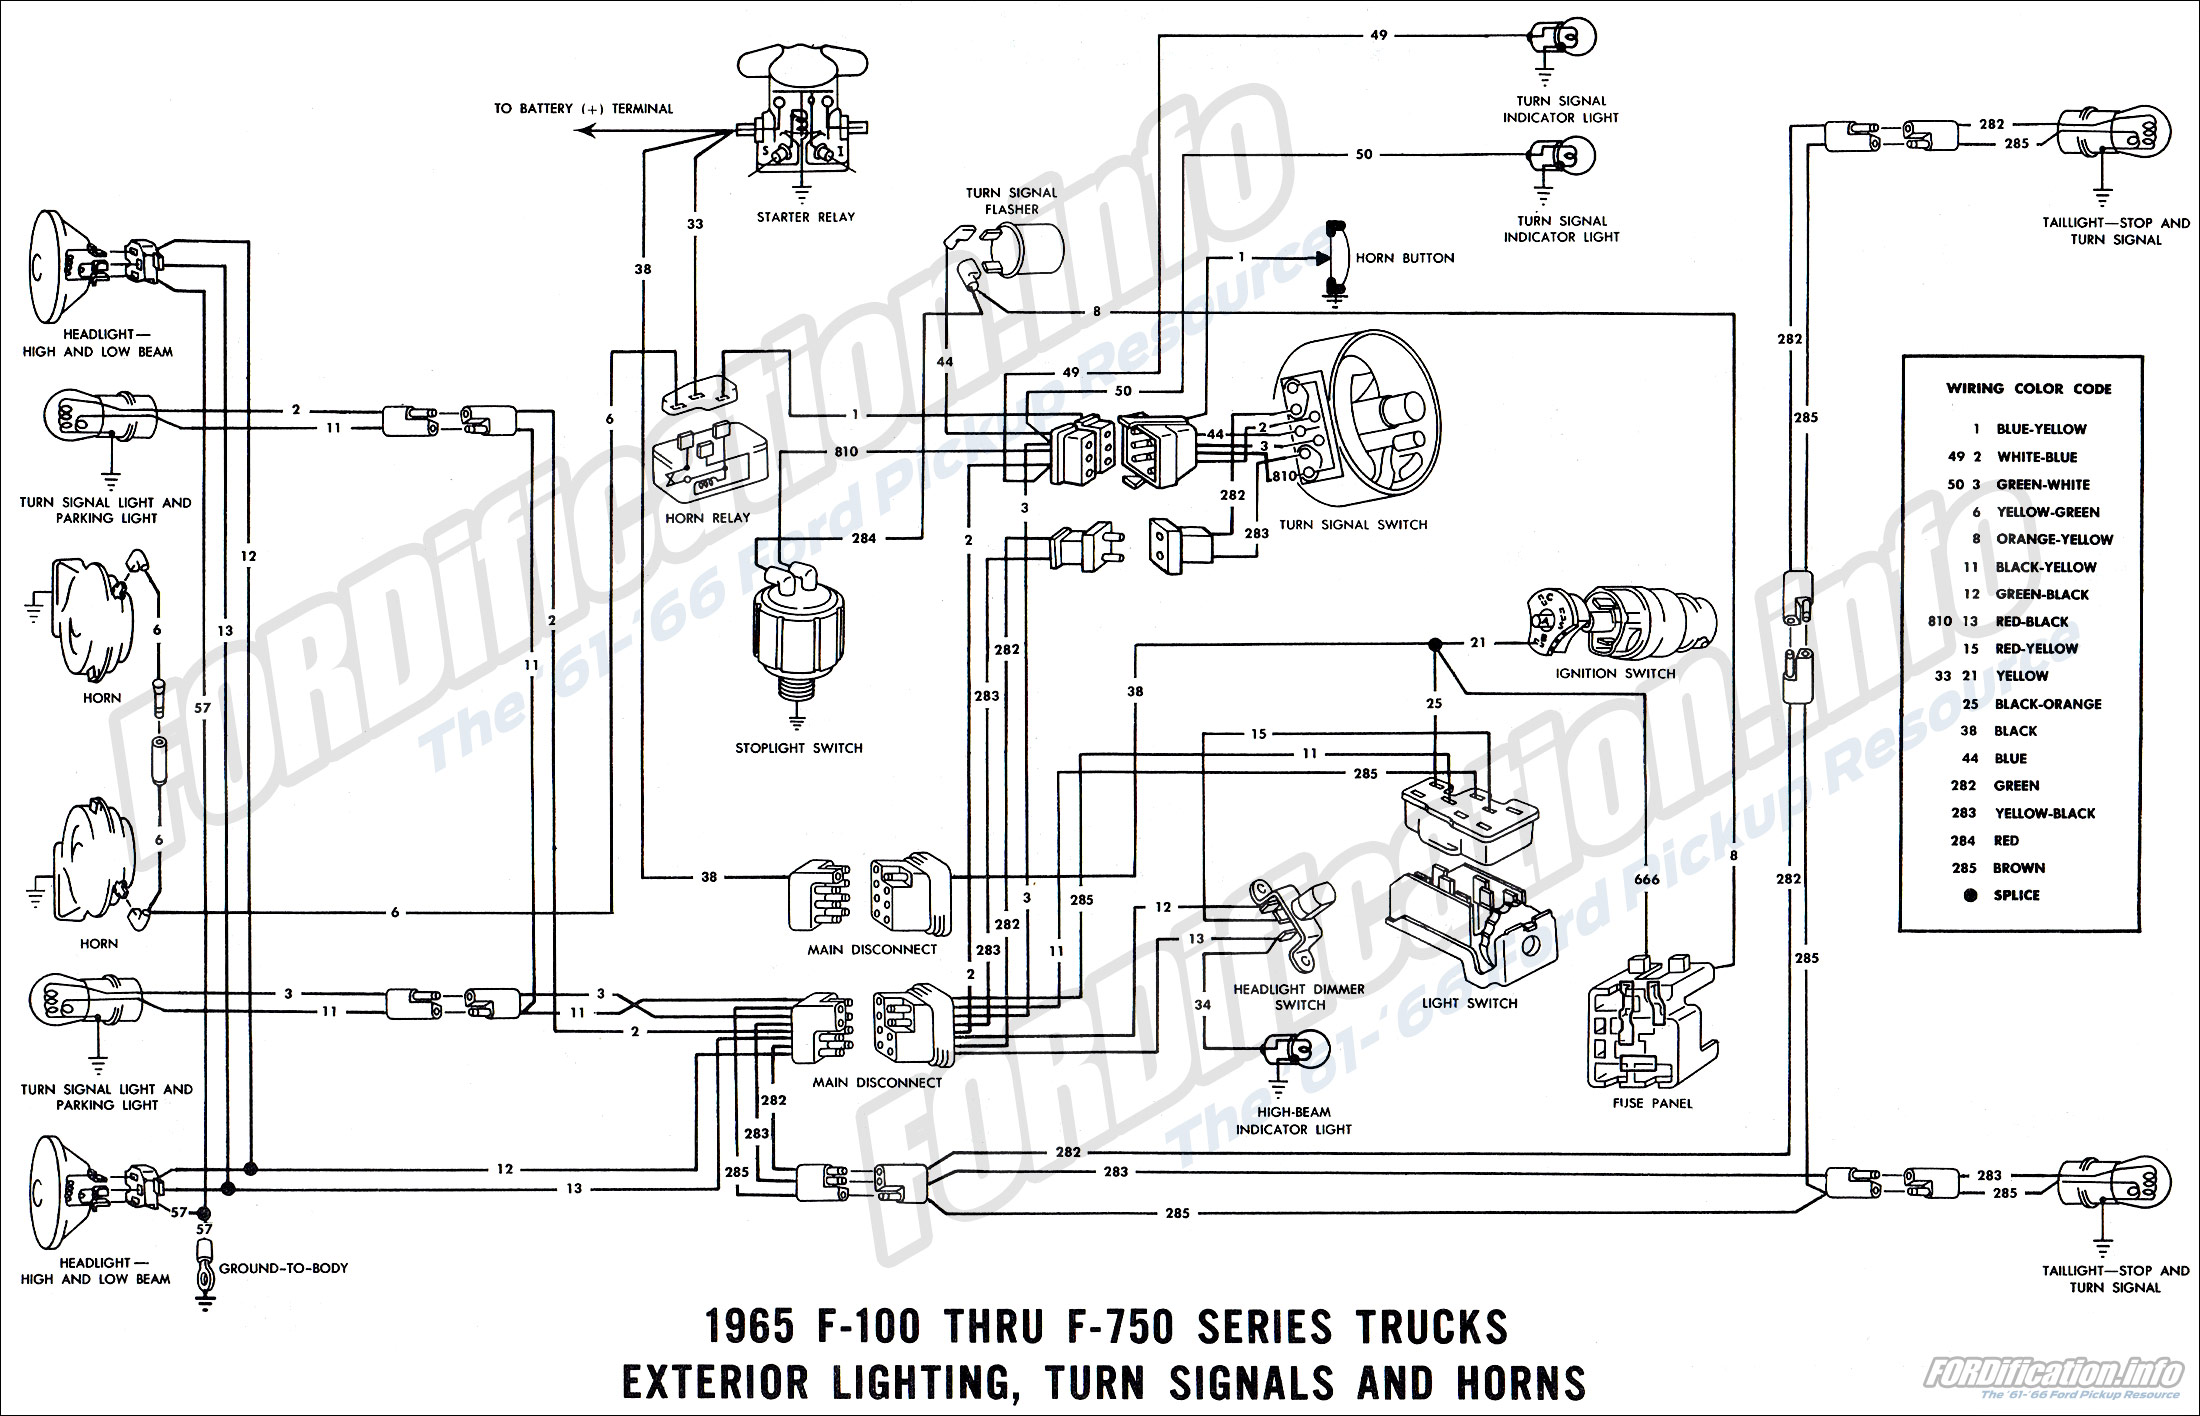 1965 lighting03 1965 ford truck wiring diagrams fordification info the '61 '66 1965 ford f100 wiring diagram at crackthecode.co